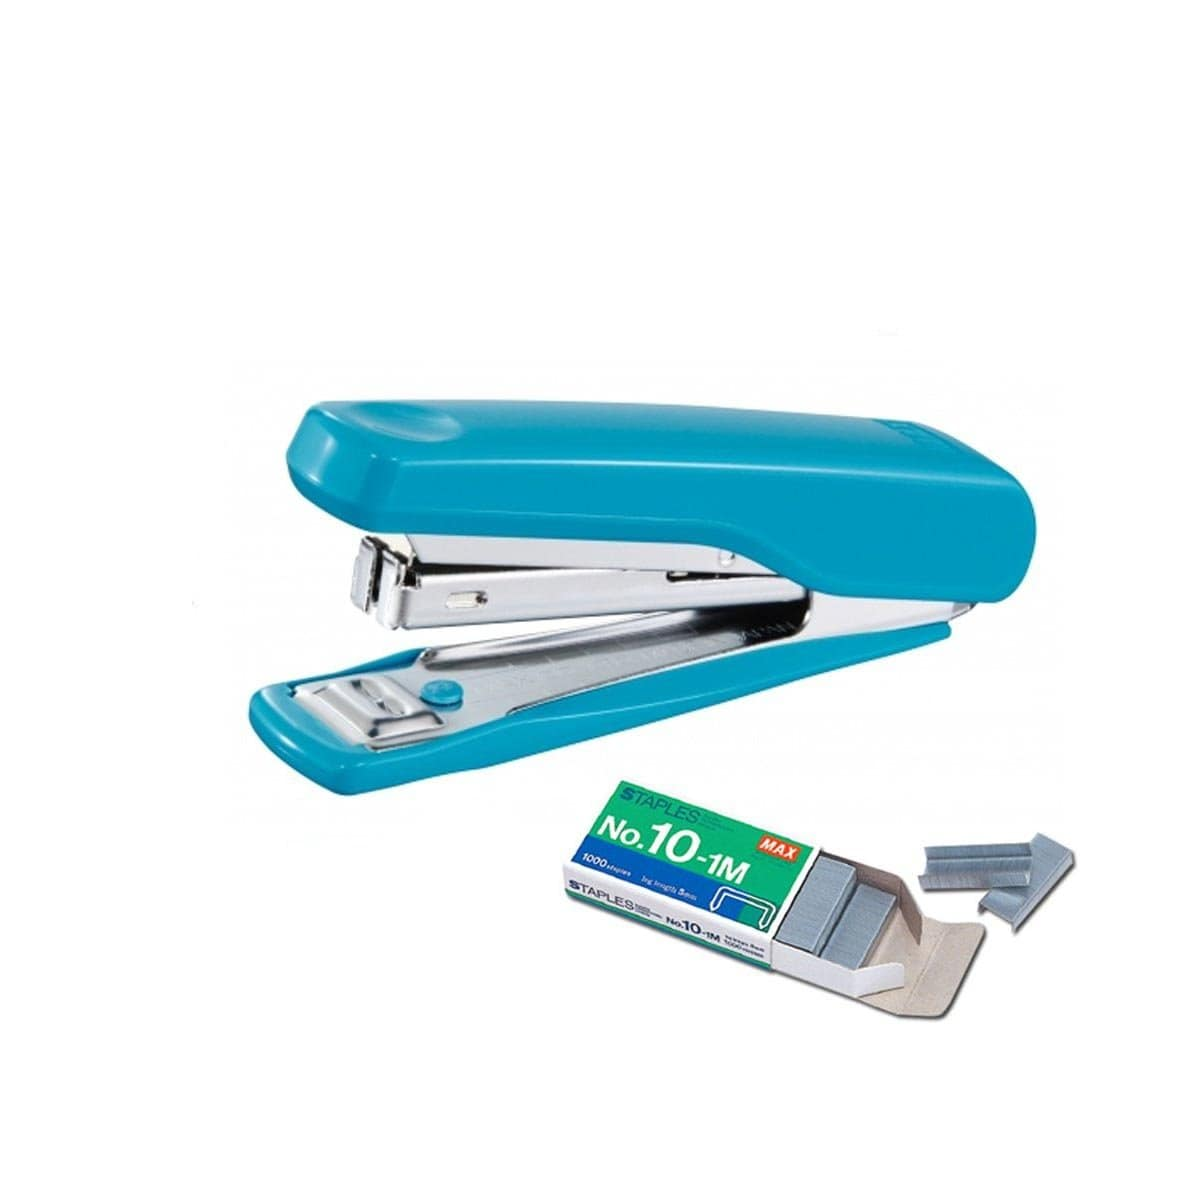 Max Stapler HD-10NK Sky Blue